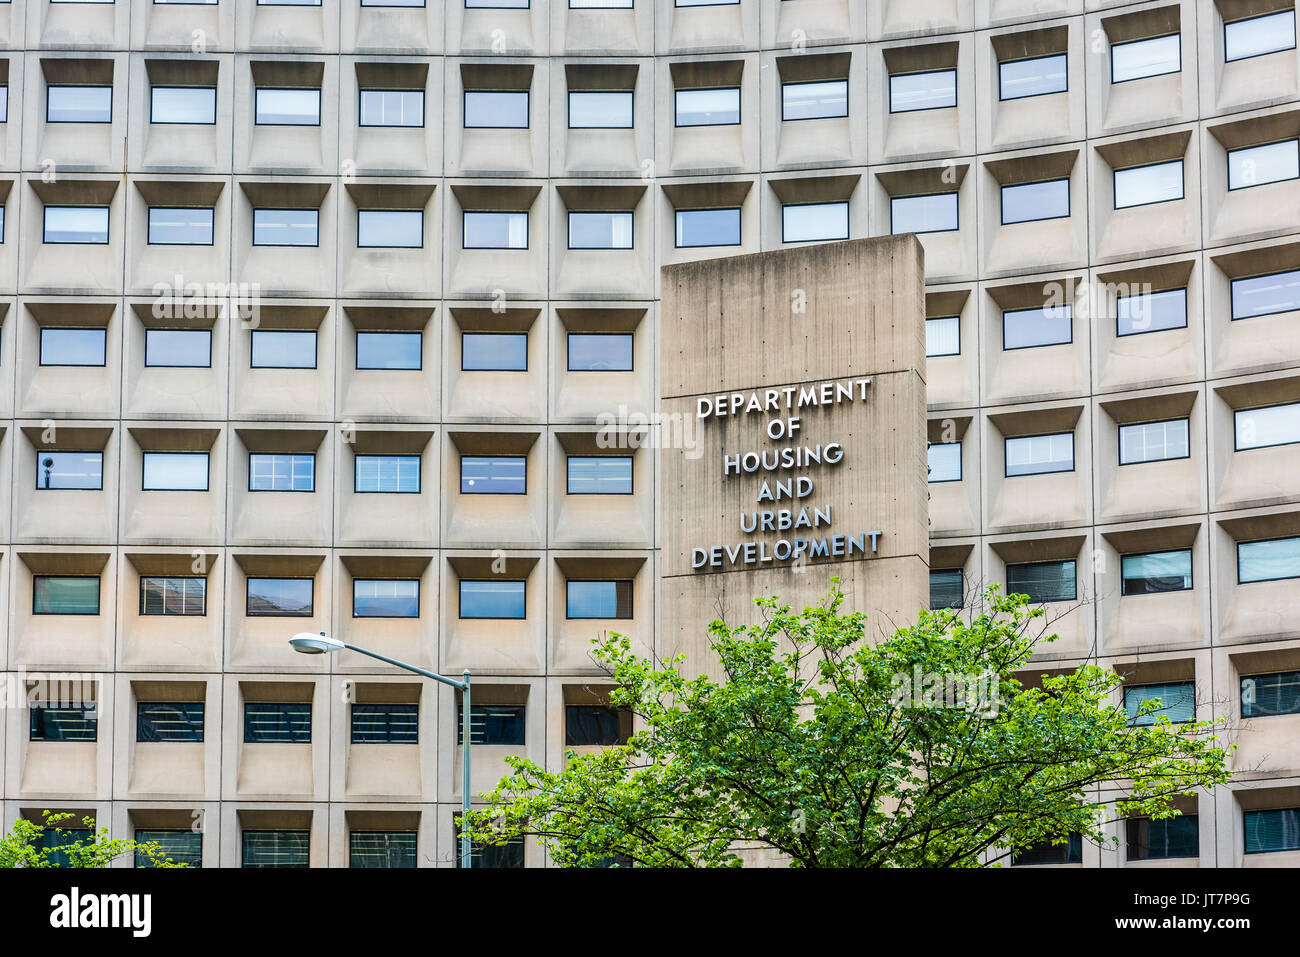 the urban development department The united states department of housing and urban development, also known  as hud, is a cabinet department in the executive branch of the united states.